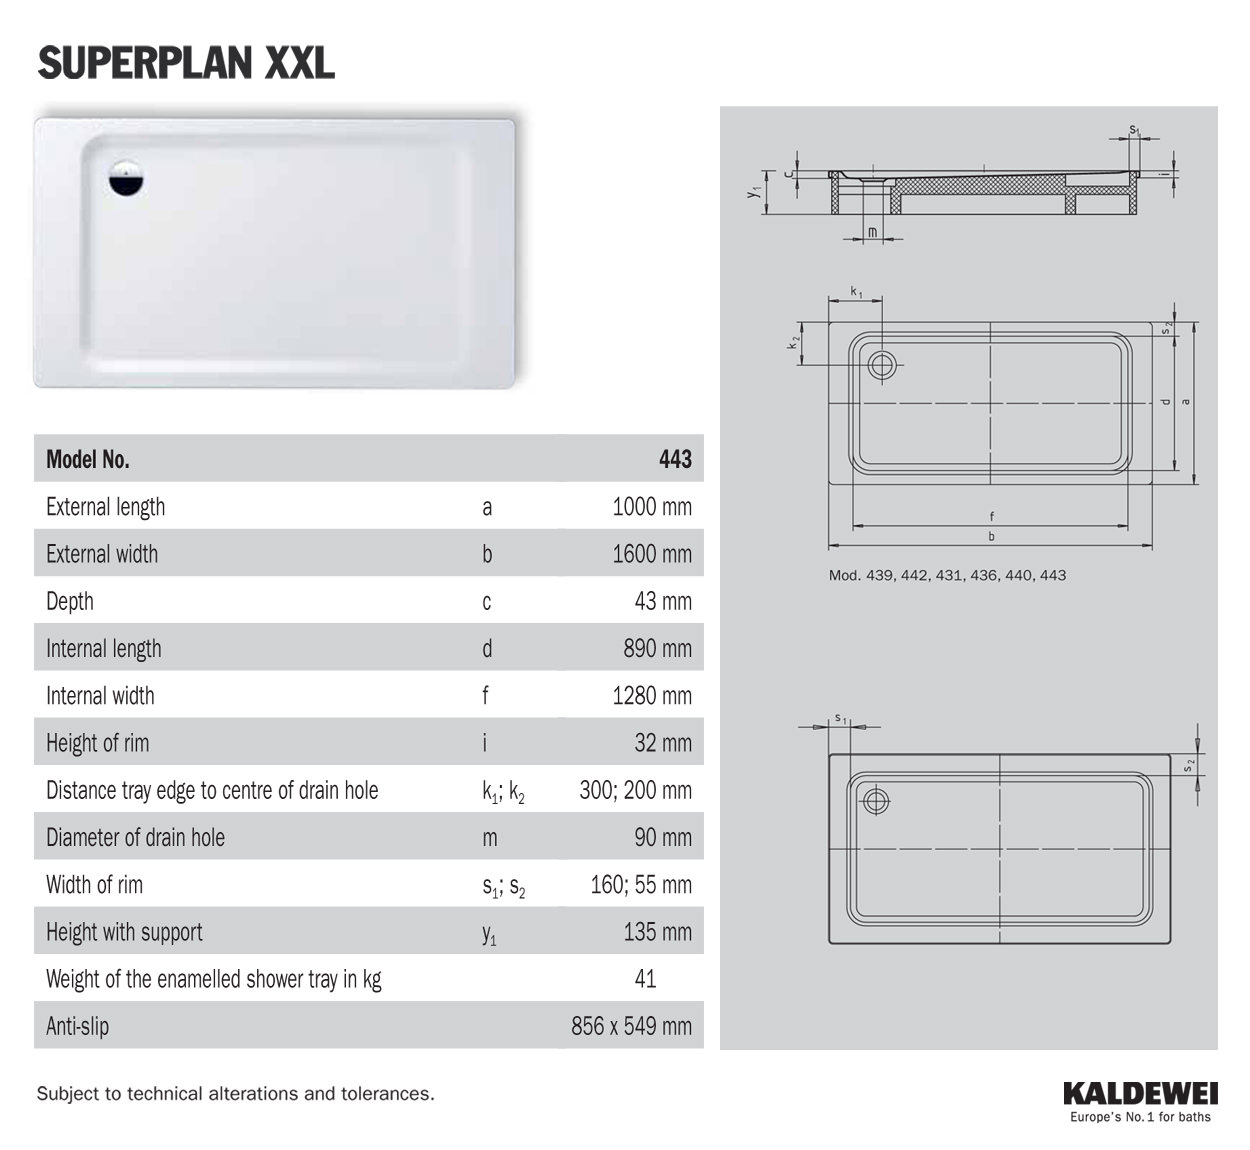 kaldewei avantgarde superplan xxl 1600 x 1000mm steel shower tray. Black Bedroom Furniture Sets. Home Design Ideas